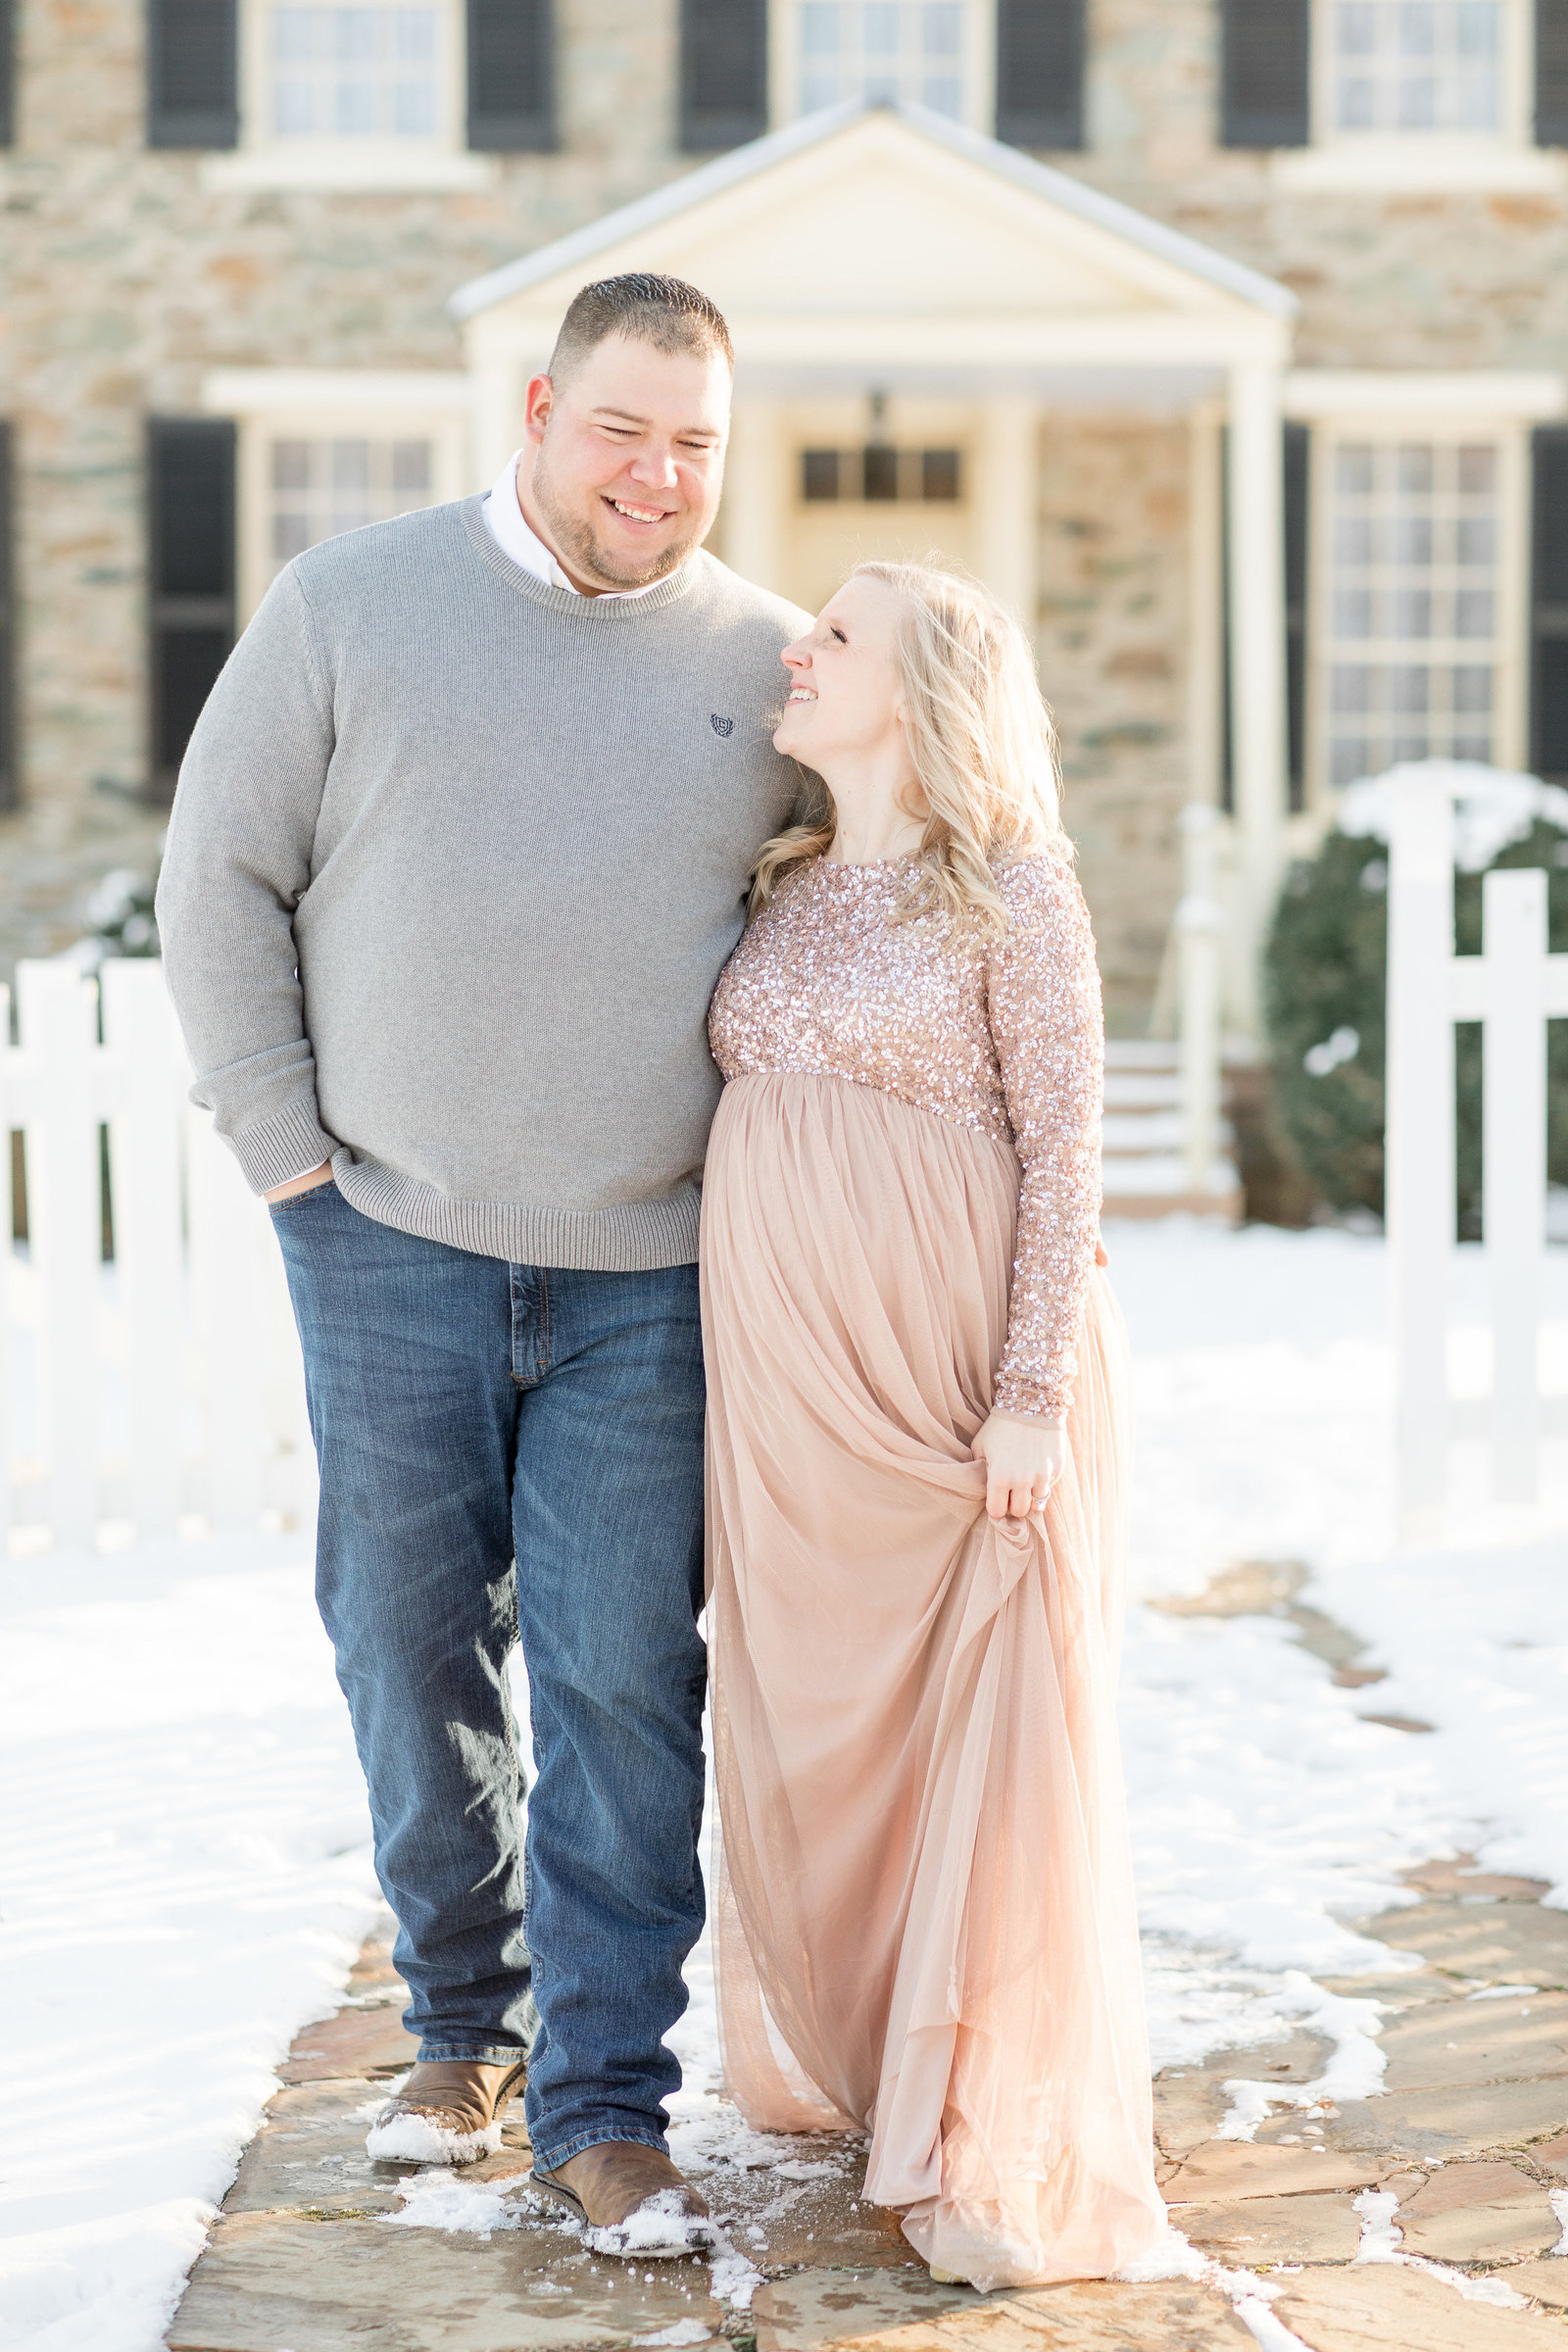 jess-dereck-snowy-winter-maternity-photo-session-003